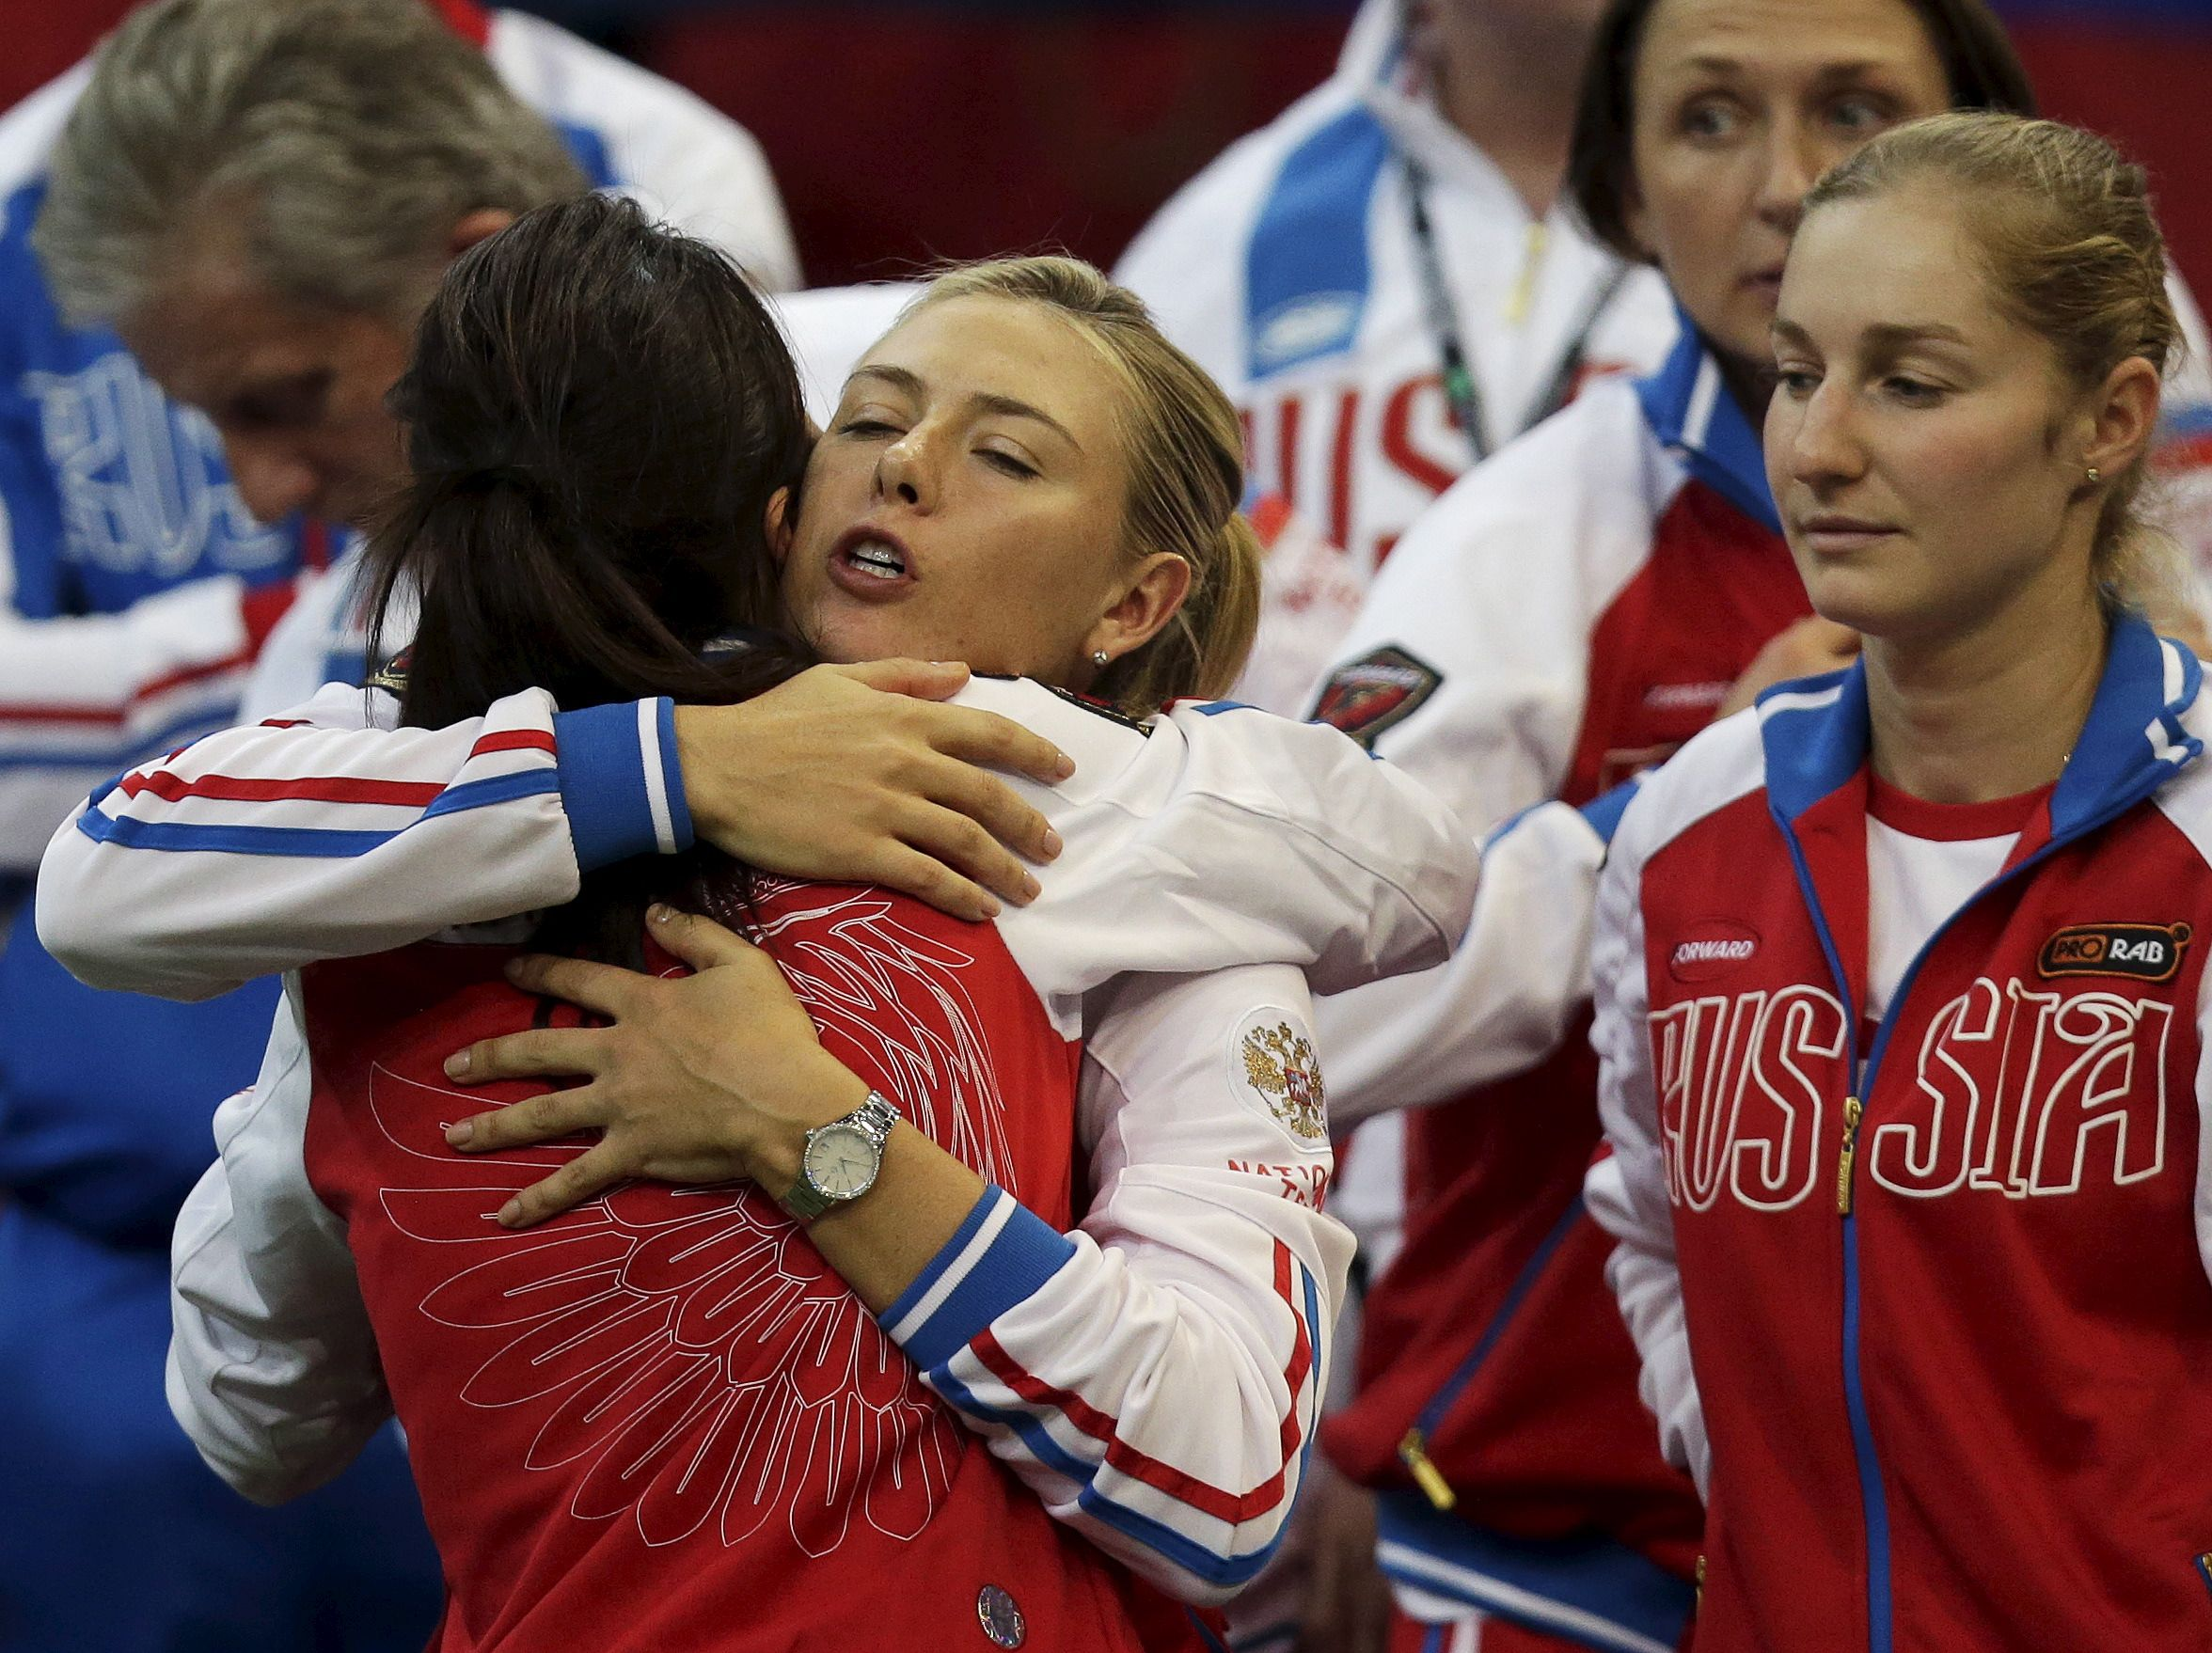 Sharapova and team Russia